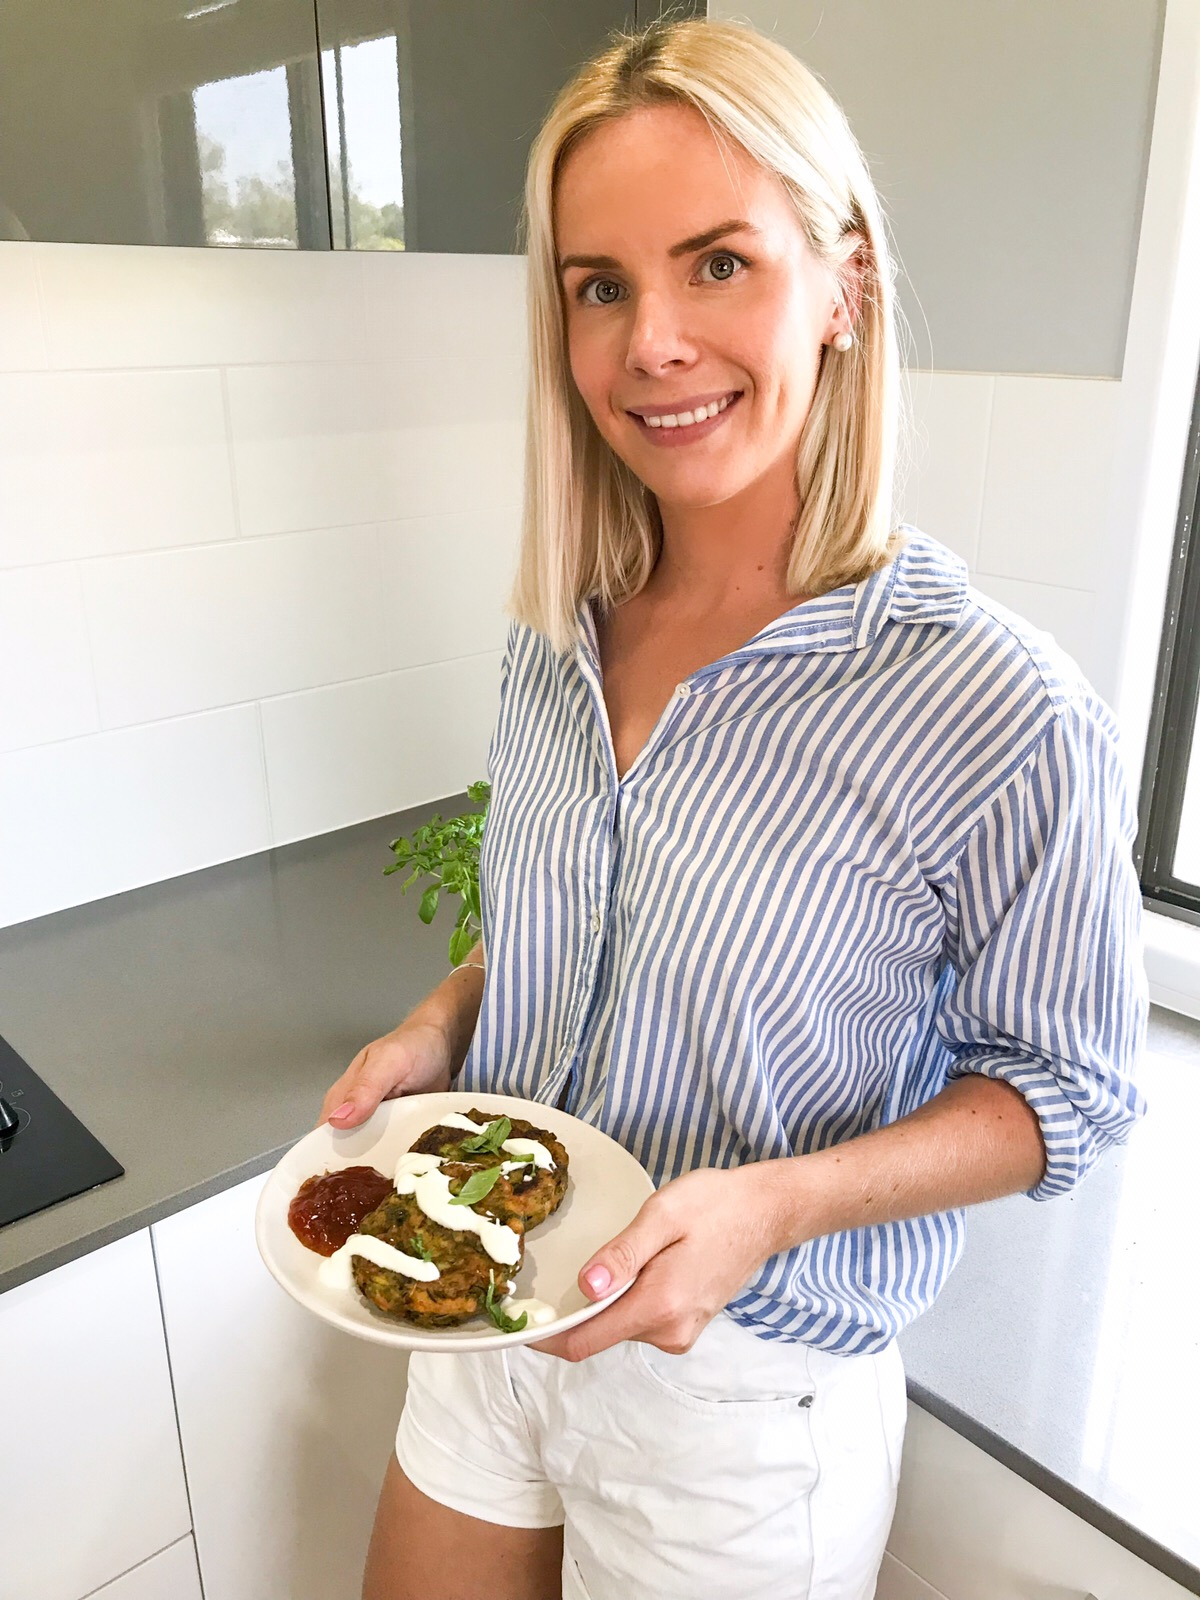 KATE FEELY - Brisbane based Accredited Practising Dietitian & Sports Dietitian